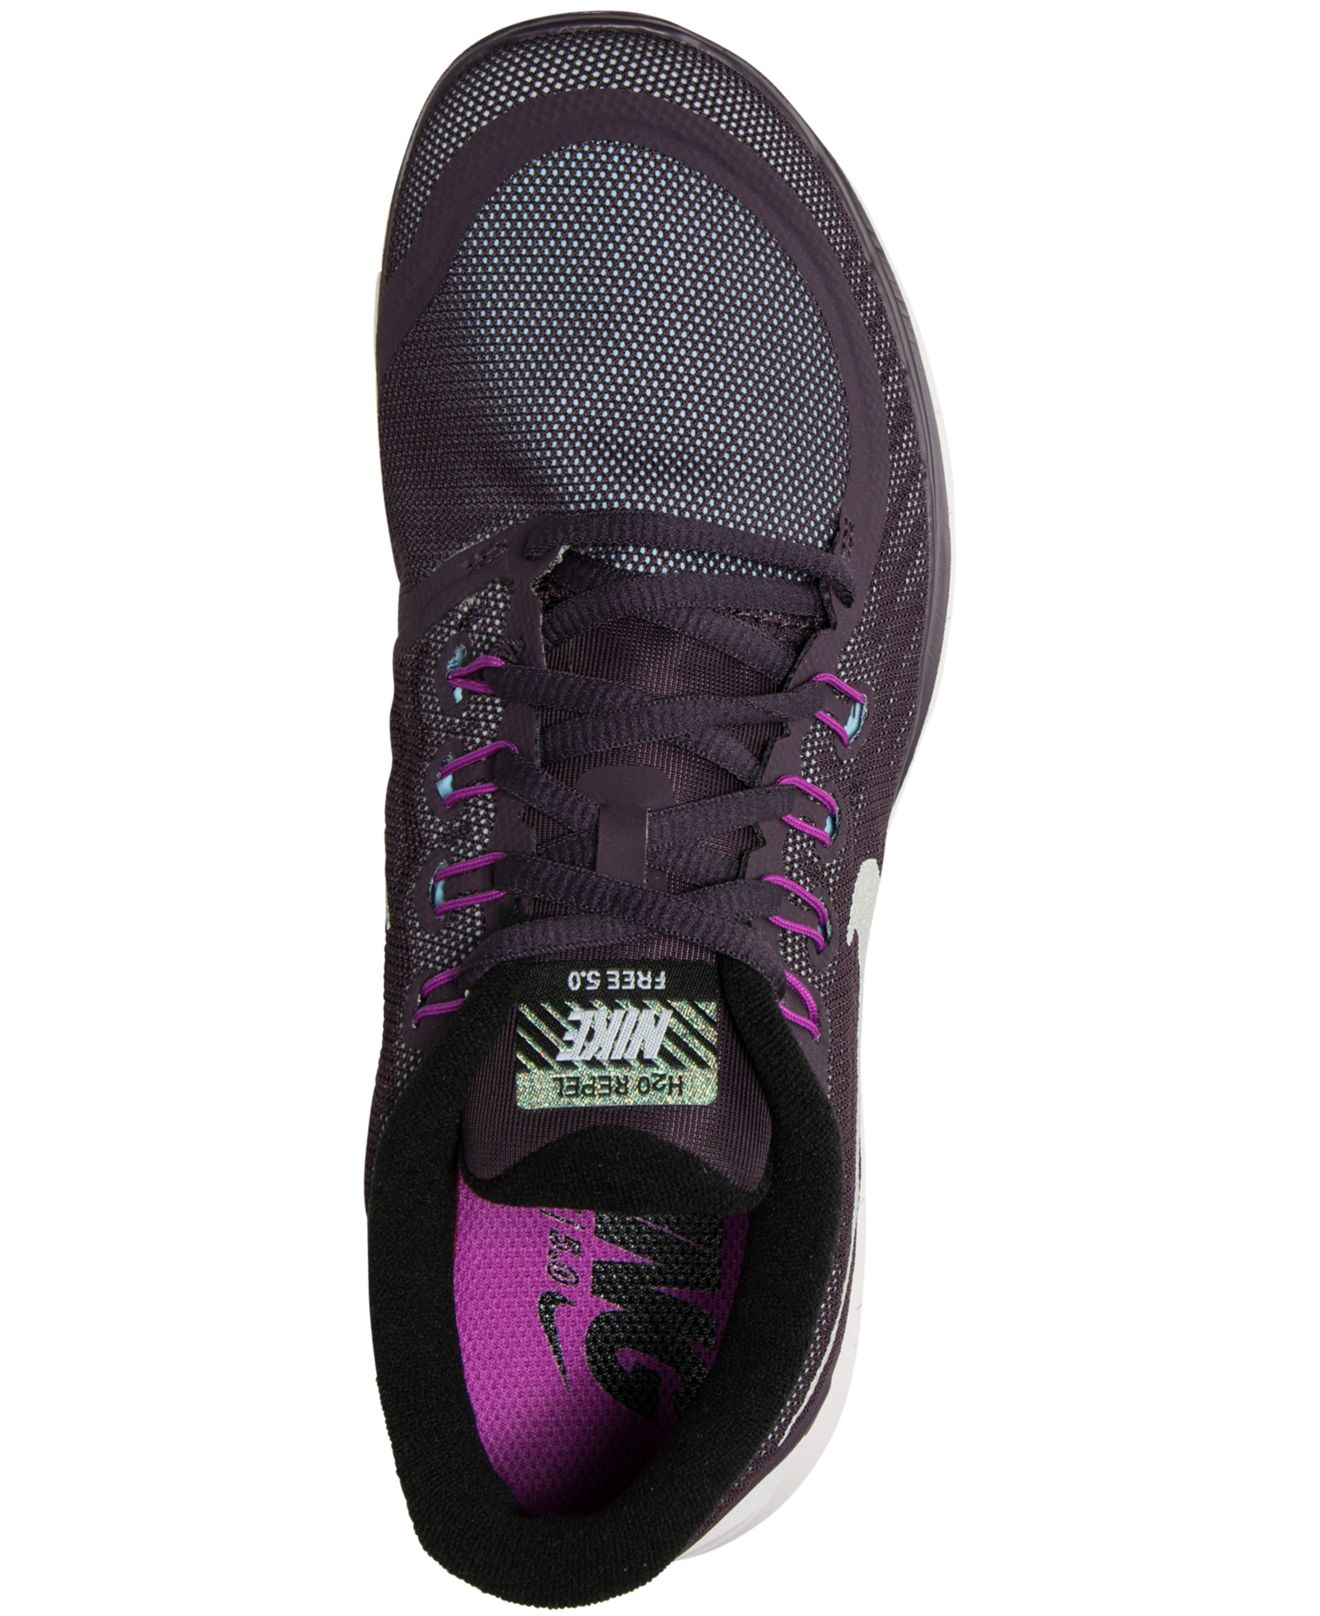 Lyst - Nike Women s Free 5.0 Flash Running Sneakers From Finish Line in  Purple for Men 963c6881fb